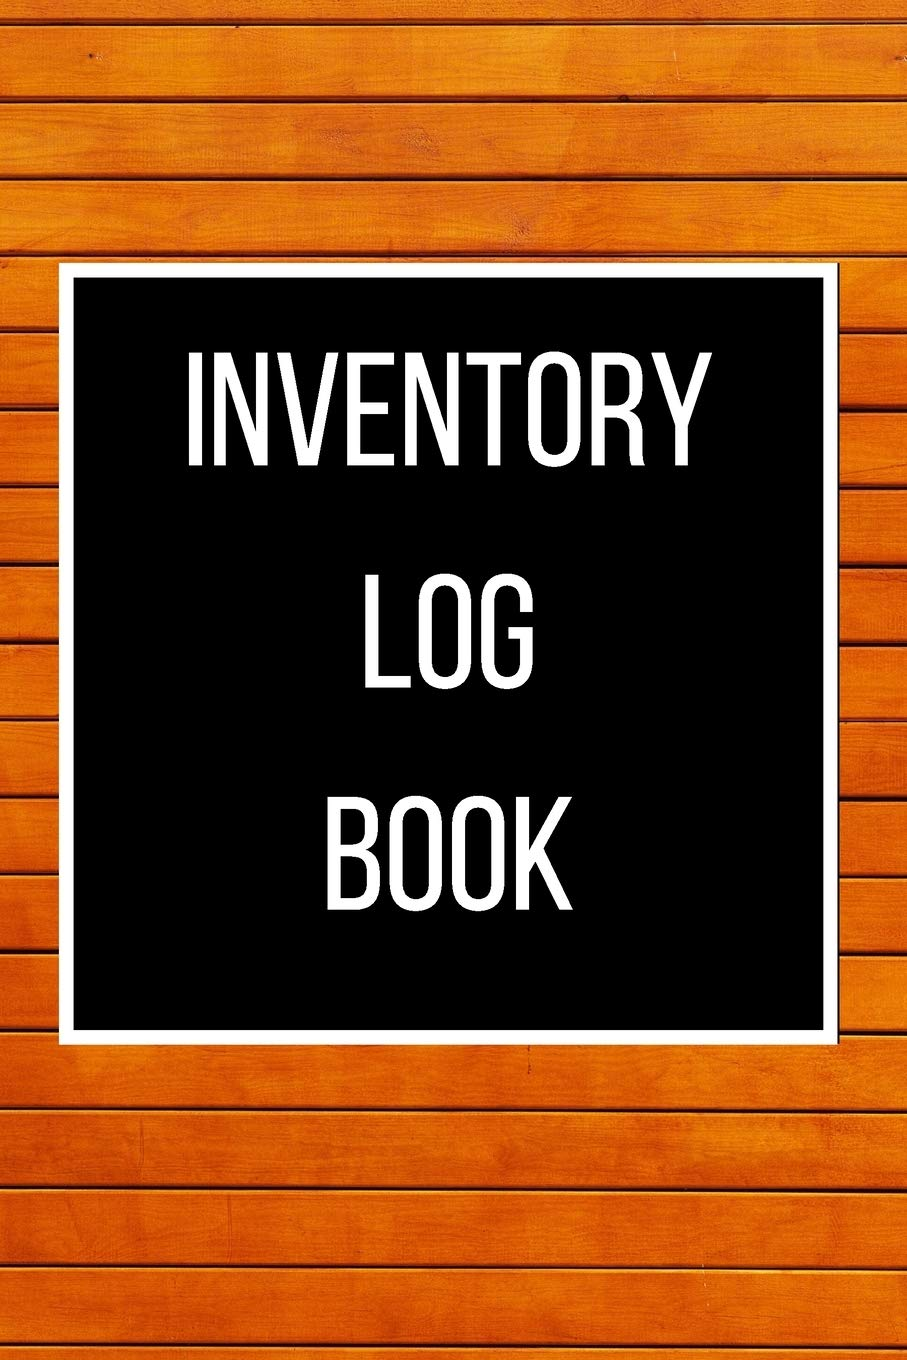 Inventory Log Book  120 Pages  Size = 6 X 9 Inches  Double Sided  Perfect Binding Non Perforated